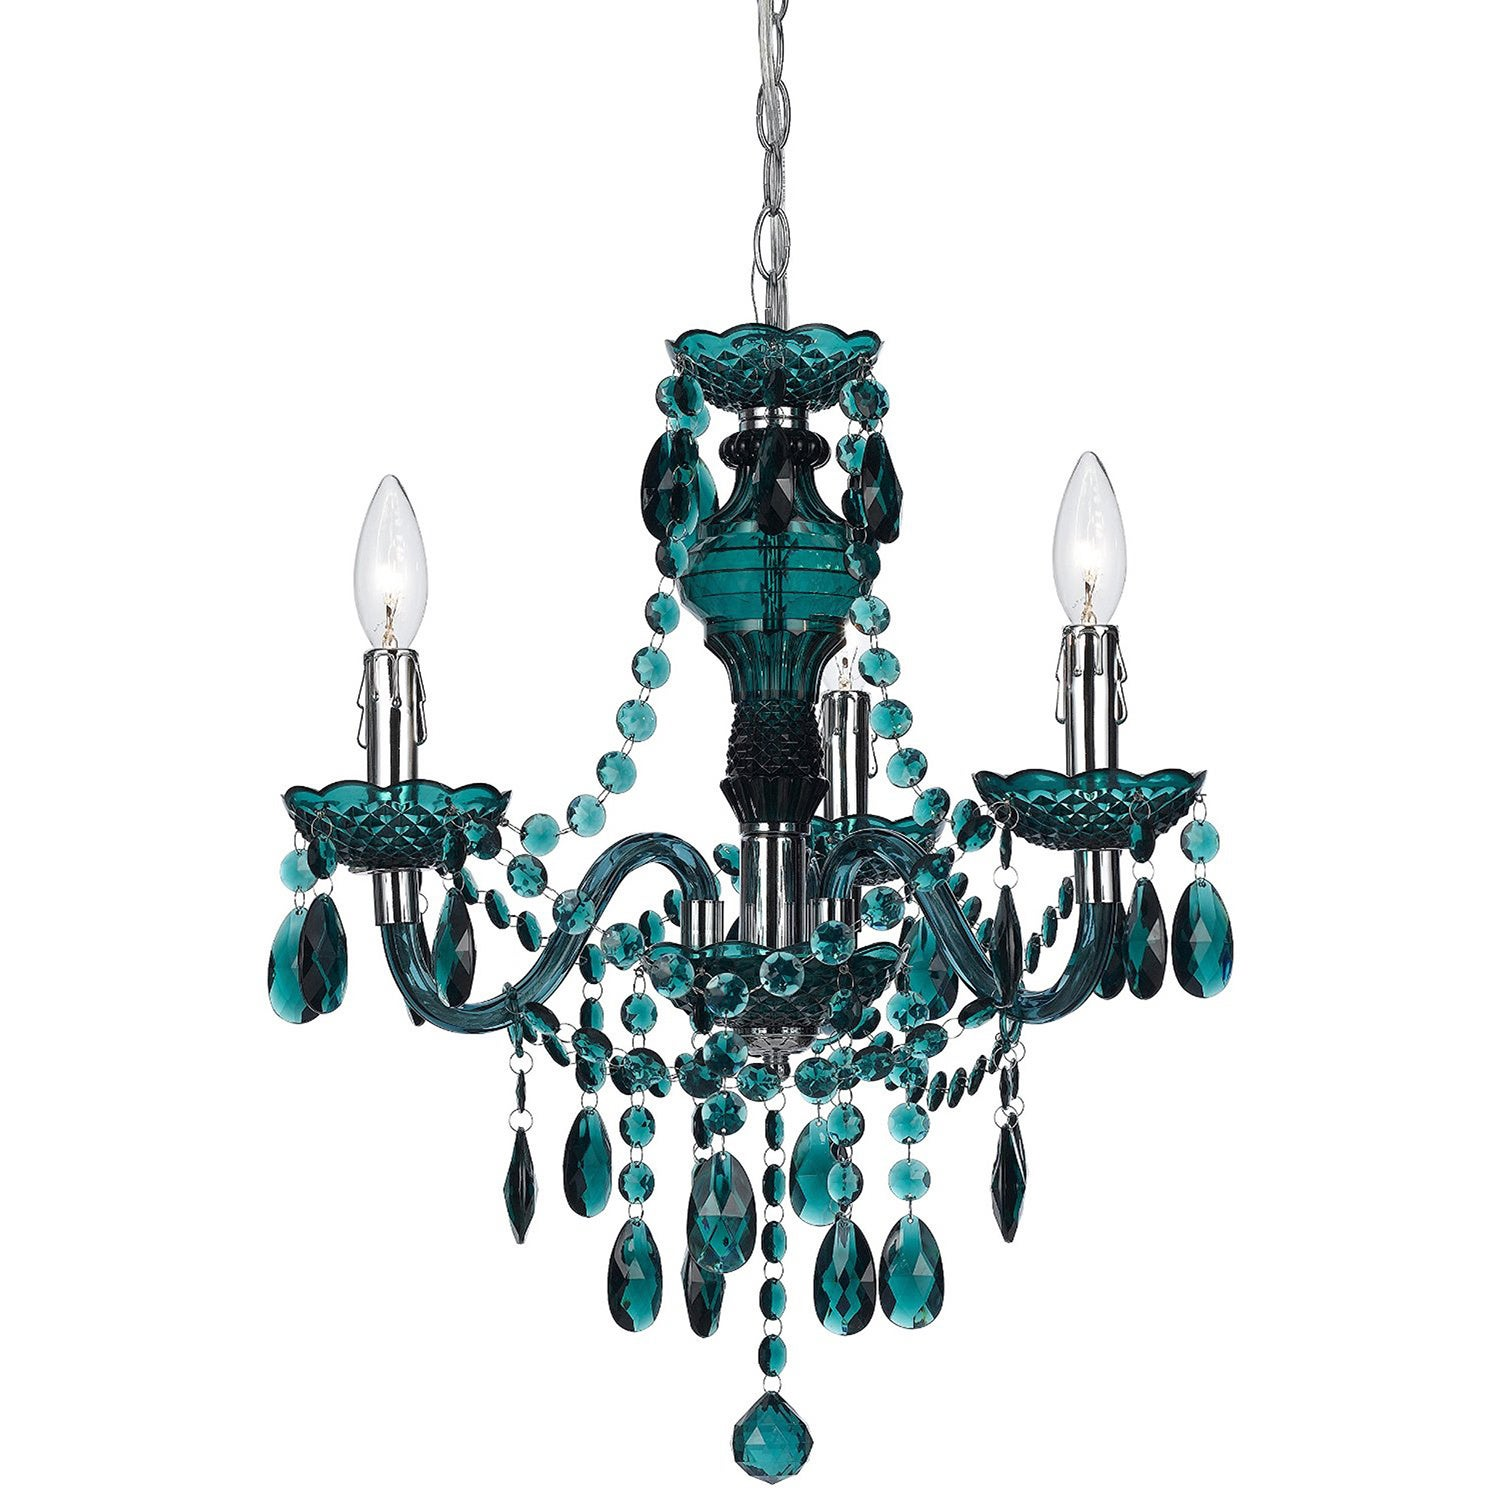 Angelohome dark green faux crystal chandelier free shipping today angelohome dark green faux crystal chandelier free shipping today overstock 16860435 arubaitofo Choice Image